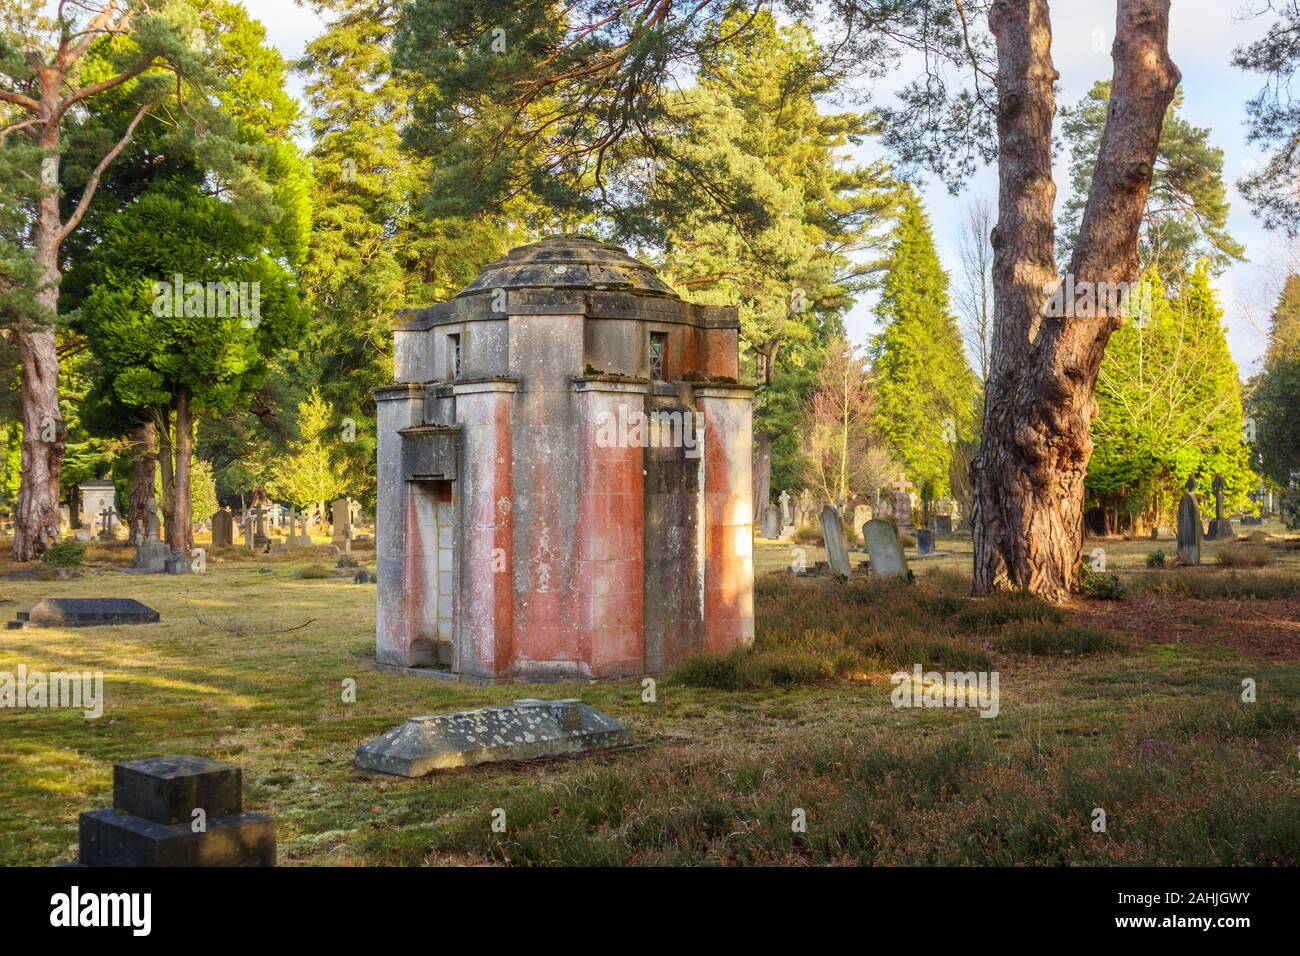 Small mausoleum in South Cemetery, Brookwood Cemetery, Cemetery Pales, Brookwood, near Woking, Surrey, southeast England, UK Stock Photo